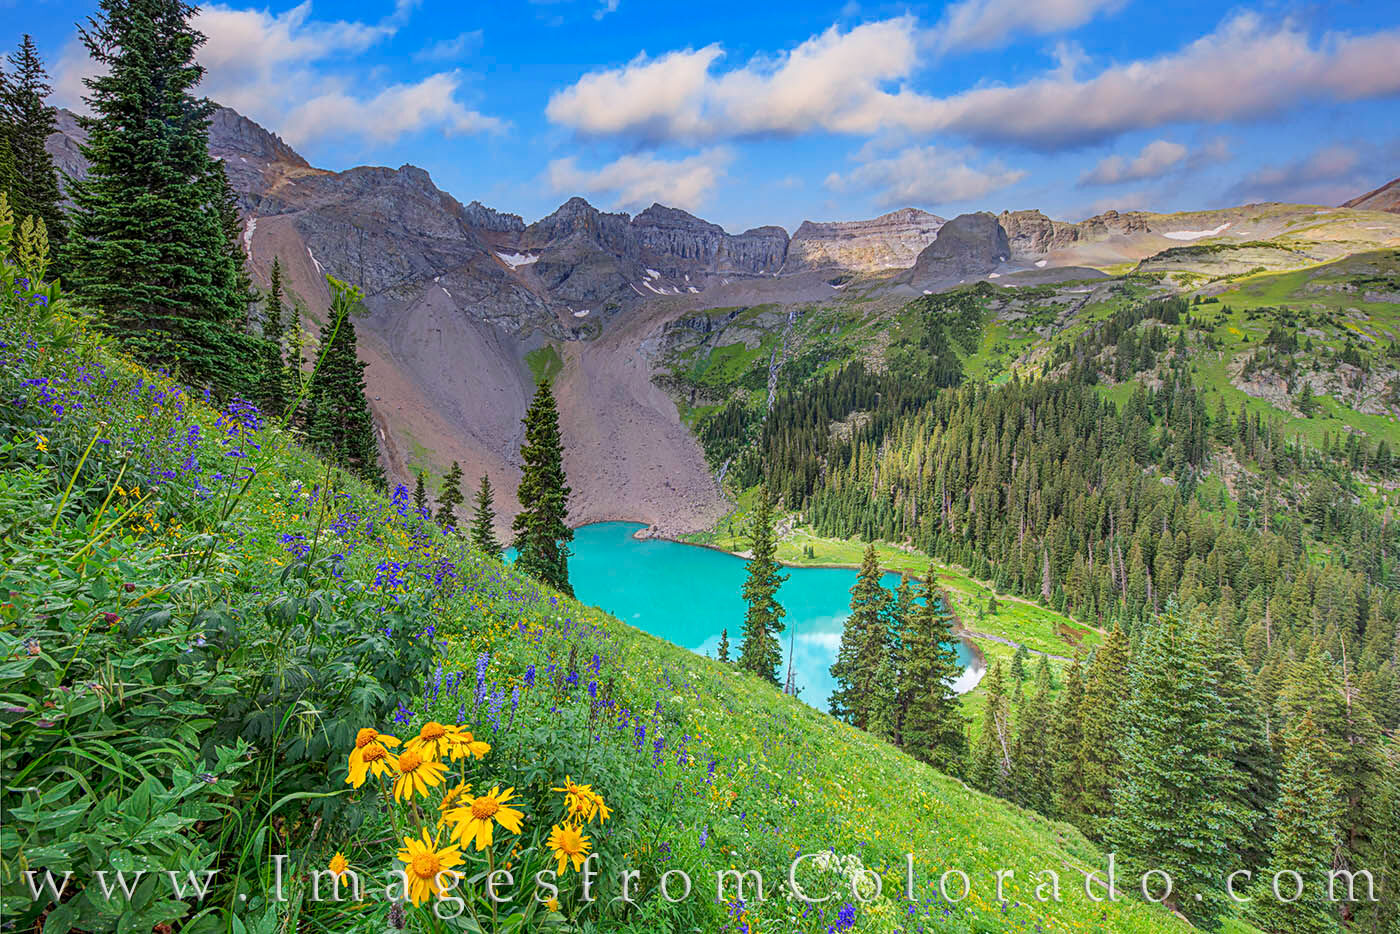 From the steep slopes above the photogenic Lower Blue Lake, wildflowers add their own color to a stunning scene. Taken in the...